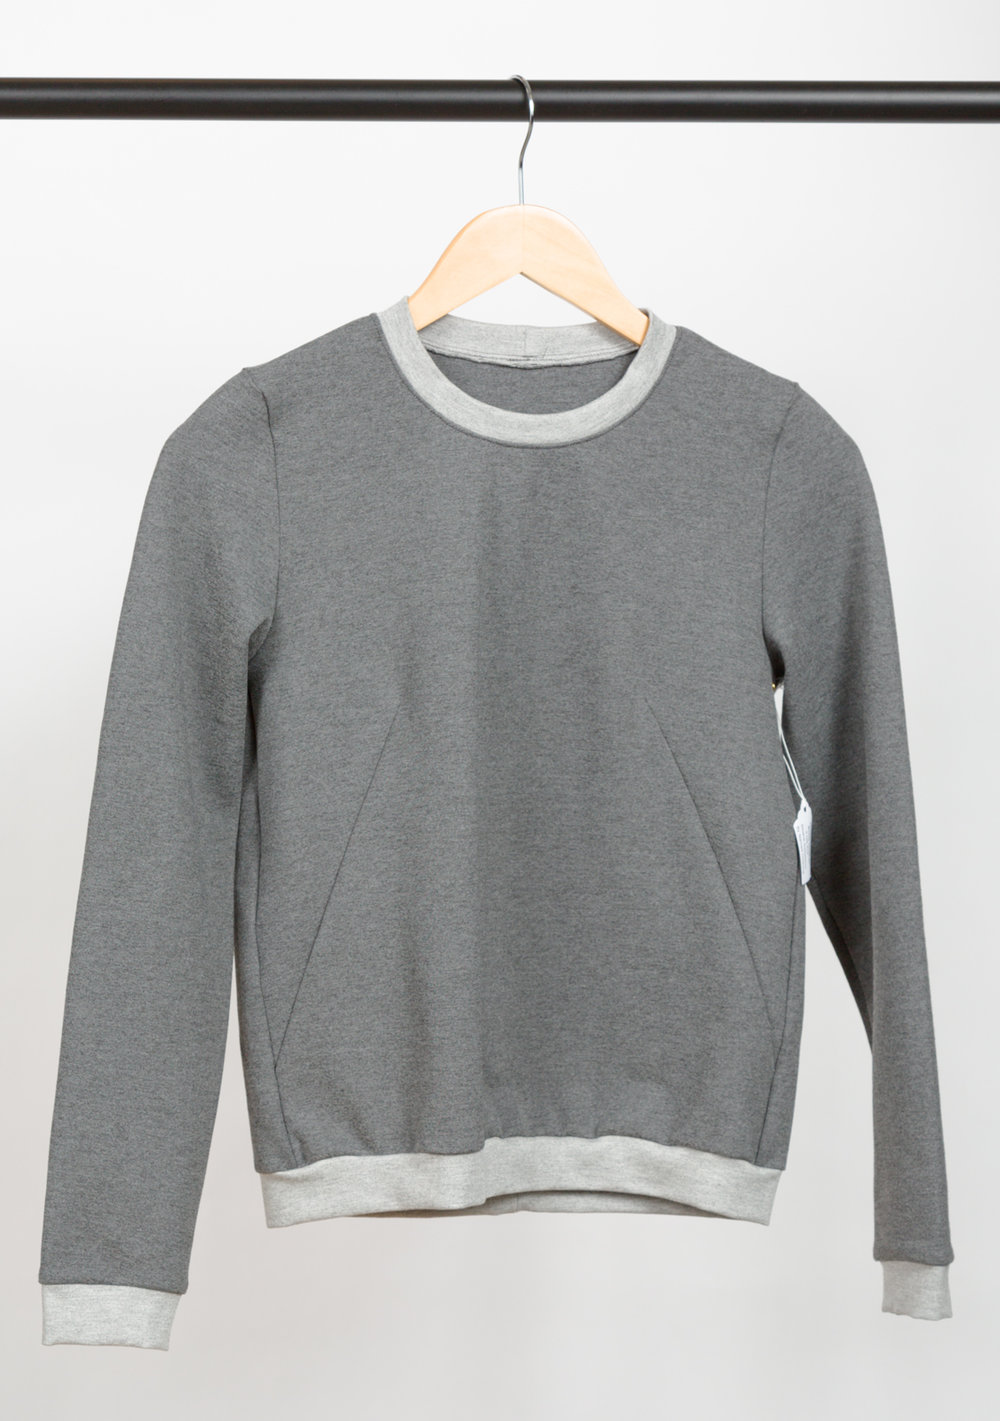 SLOANE SWEATSHIRT   DESIGNED BY   NAMED ,  MADE BY   PINK SUEDE SHOE,   FEATURING   ARIETTA PONTE DE ROMA HEATHER